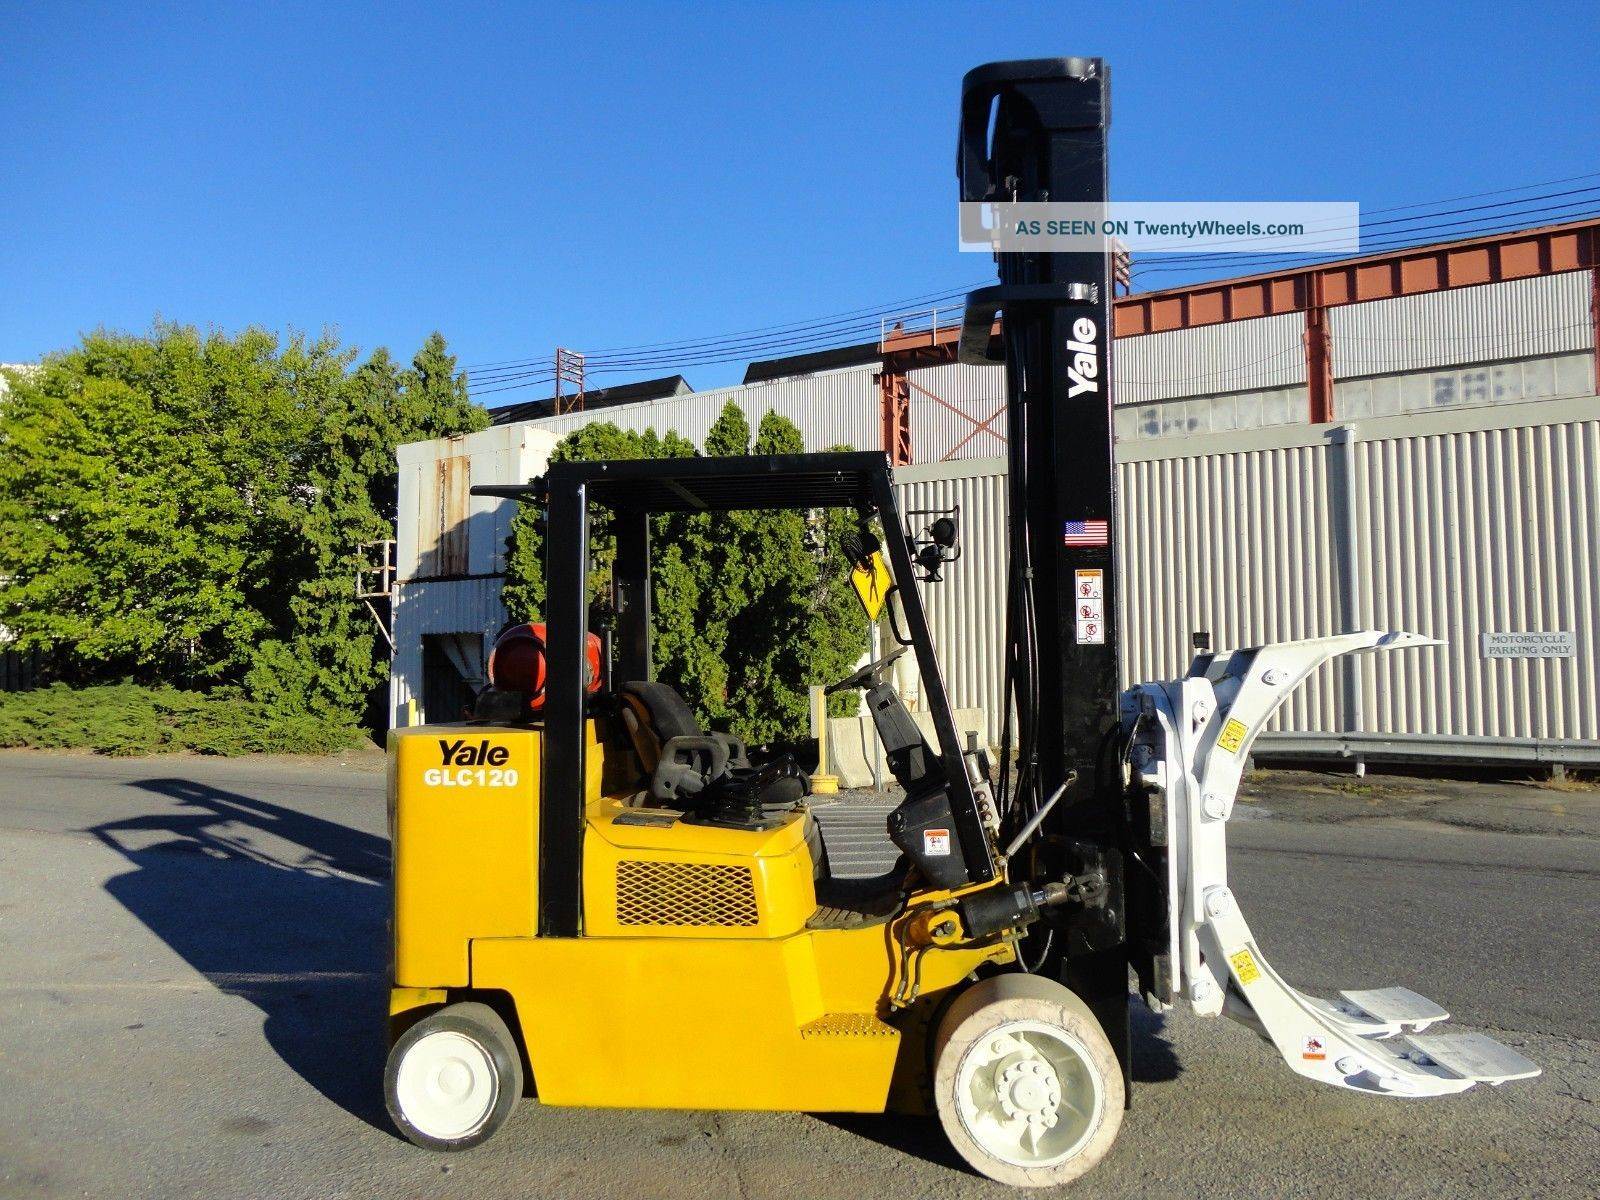 2005 Yale Glc120 With Cascade Paper Roll Clamp Forklift 8